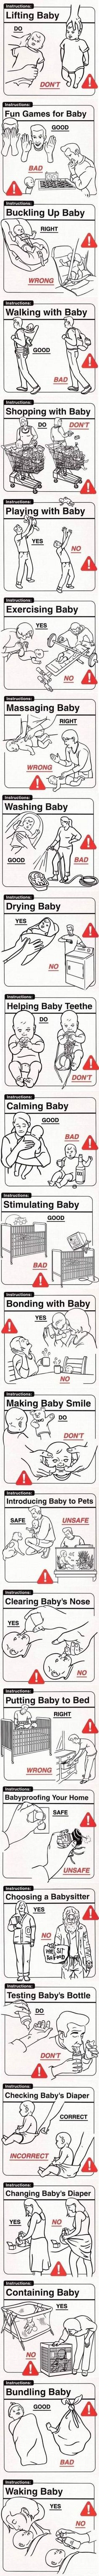 Important parenting tips...I always find these extremely hilarious.